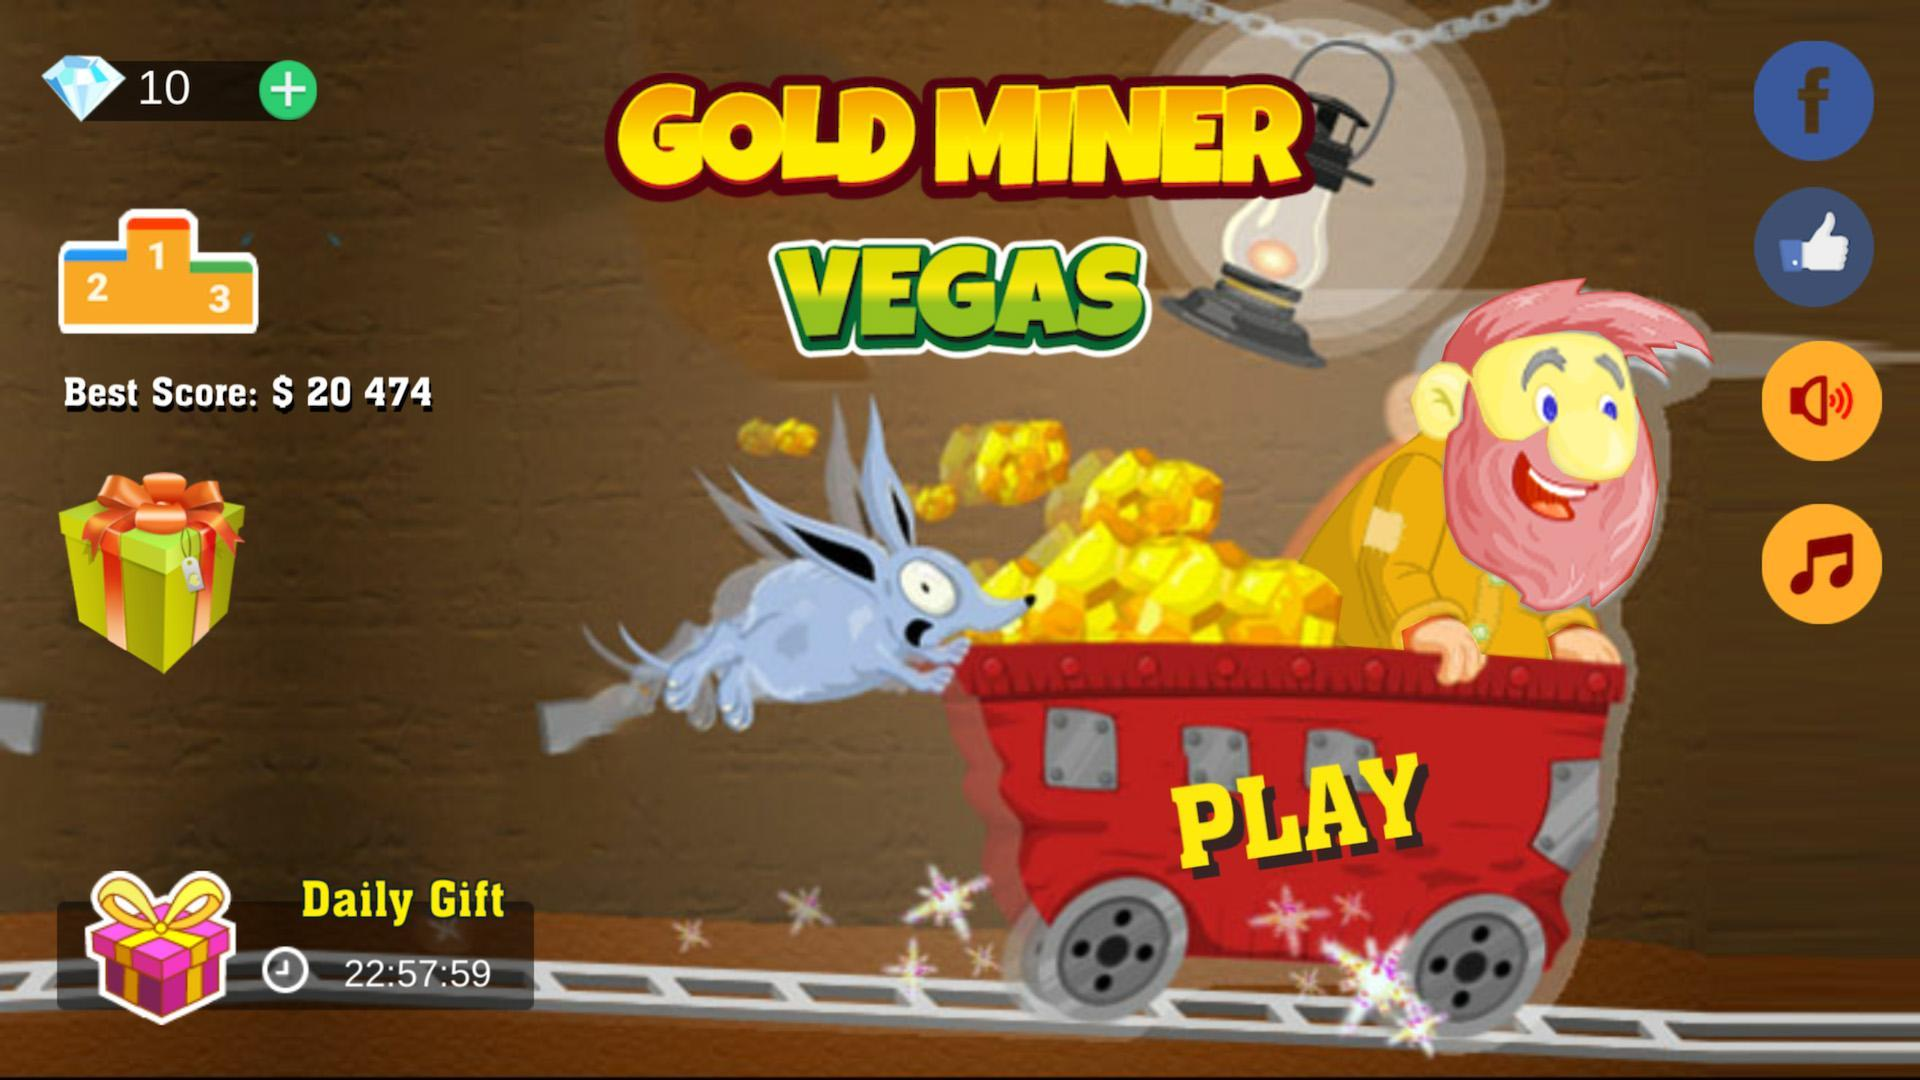 Gold miner vegas for android apk download.